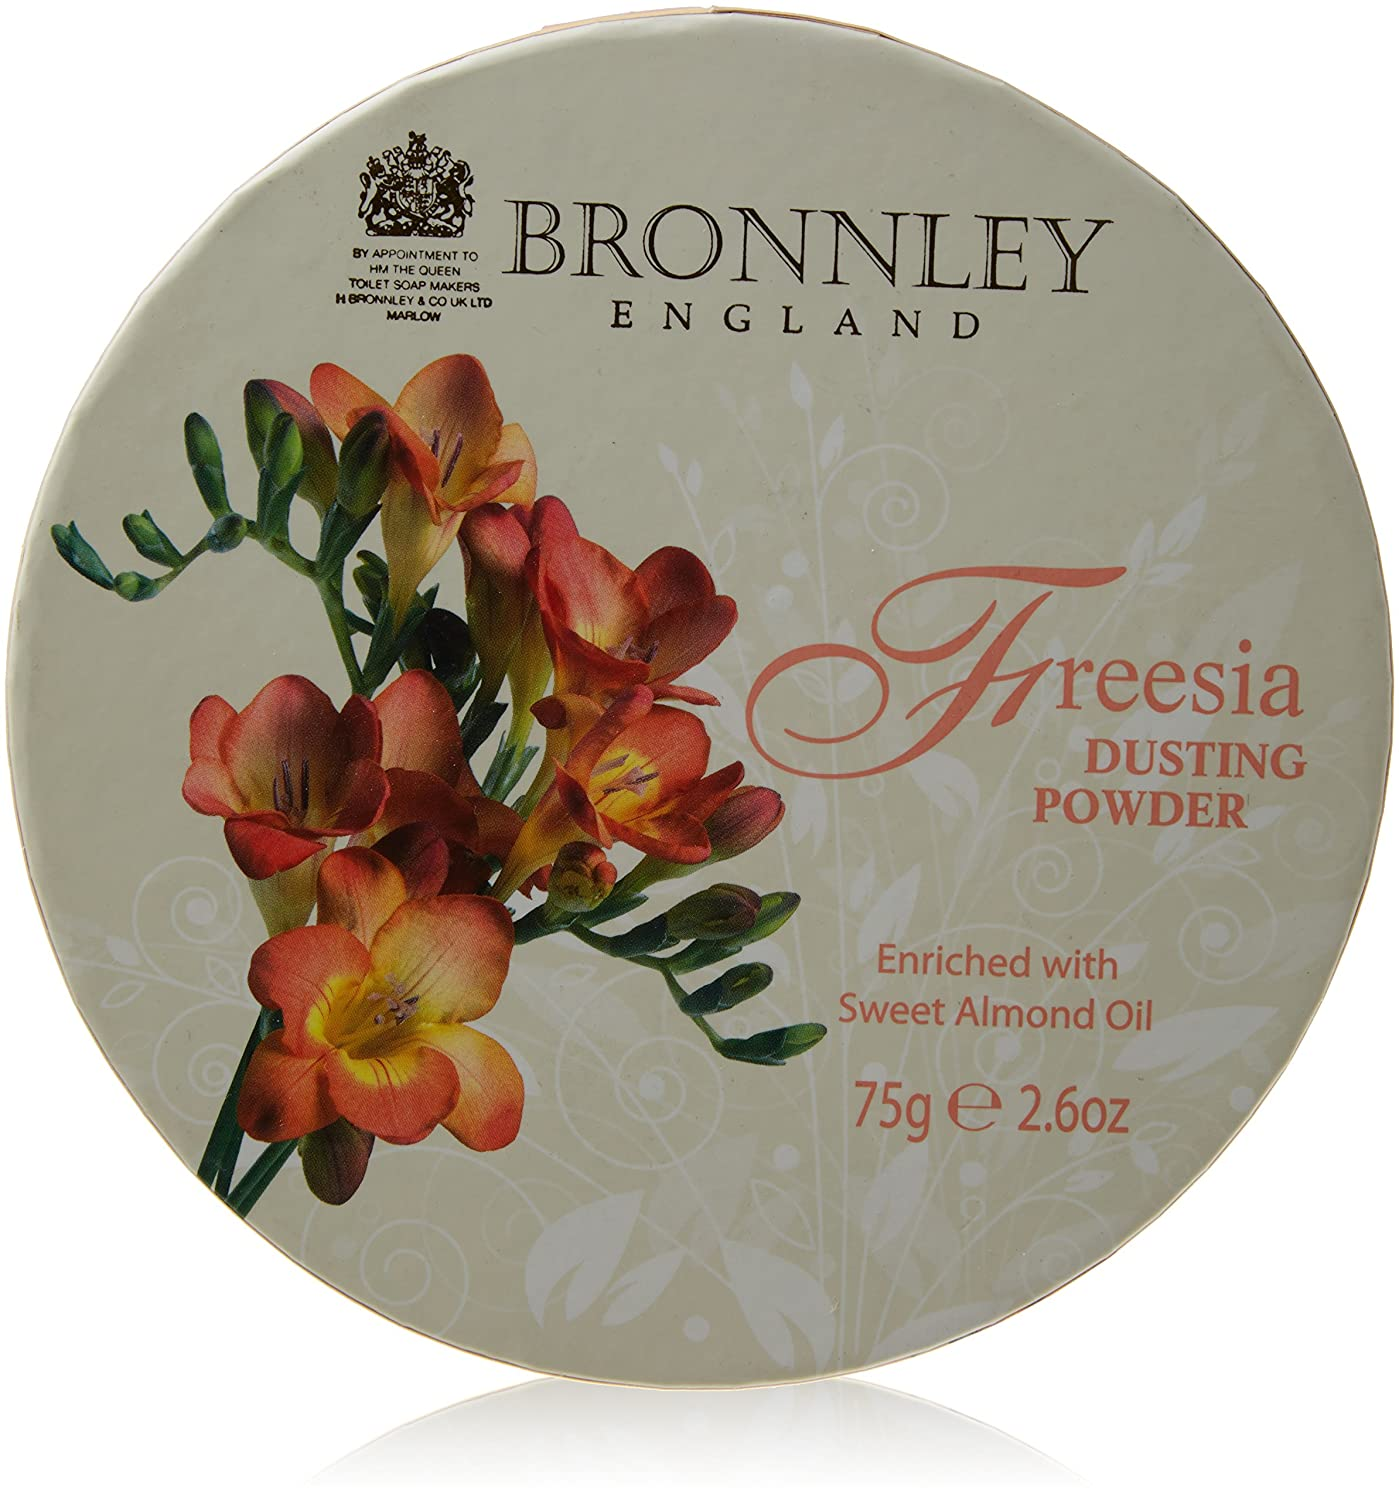 Bronnley Freesia Dusting Powder 75g H. Bronnley & Co. UK Ltd 112039